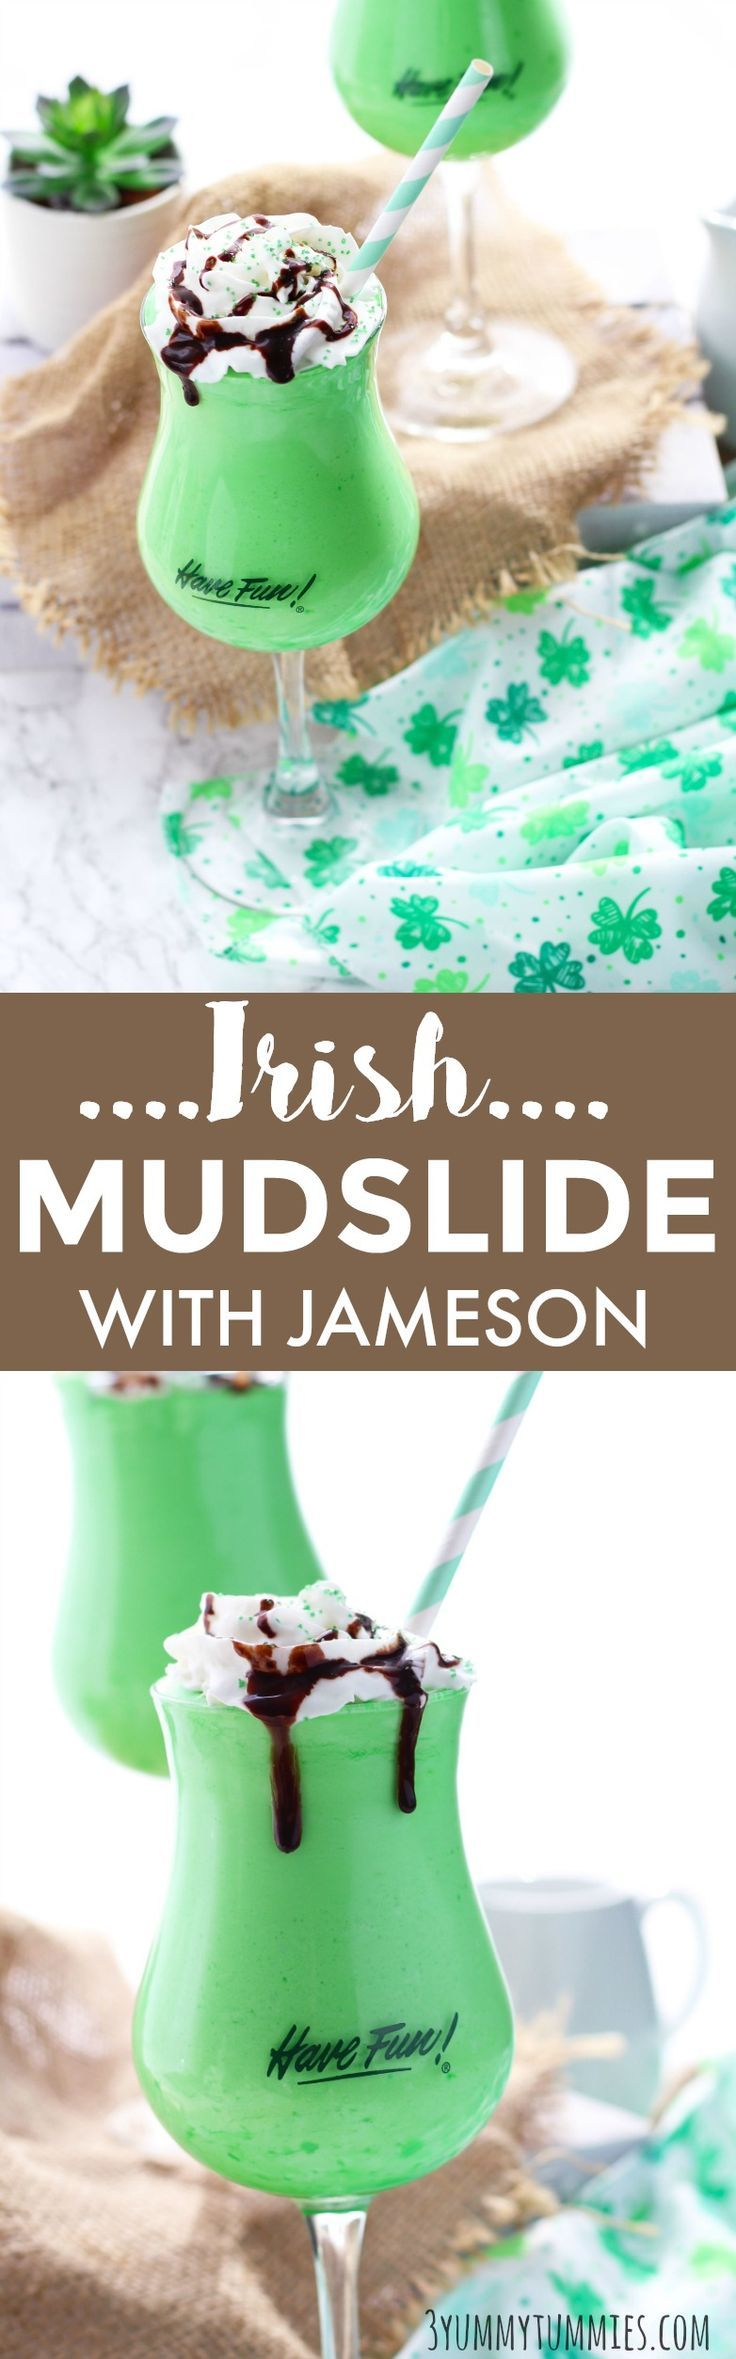 An Irish Mudslide with Jameson and Baileys is a decadent St. Patrick's Day cocktail. #greencocktail #cocktails #stpatricksday #mudslide